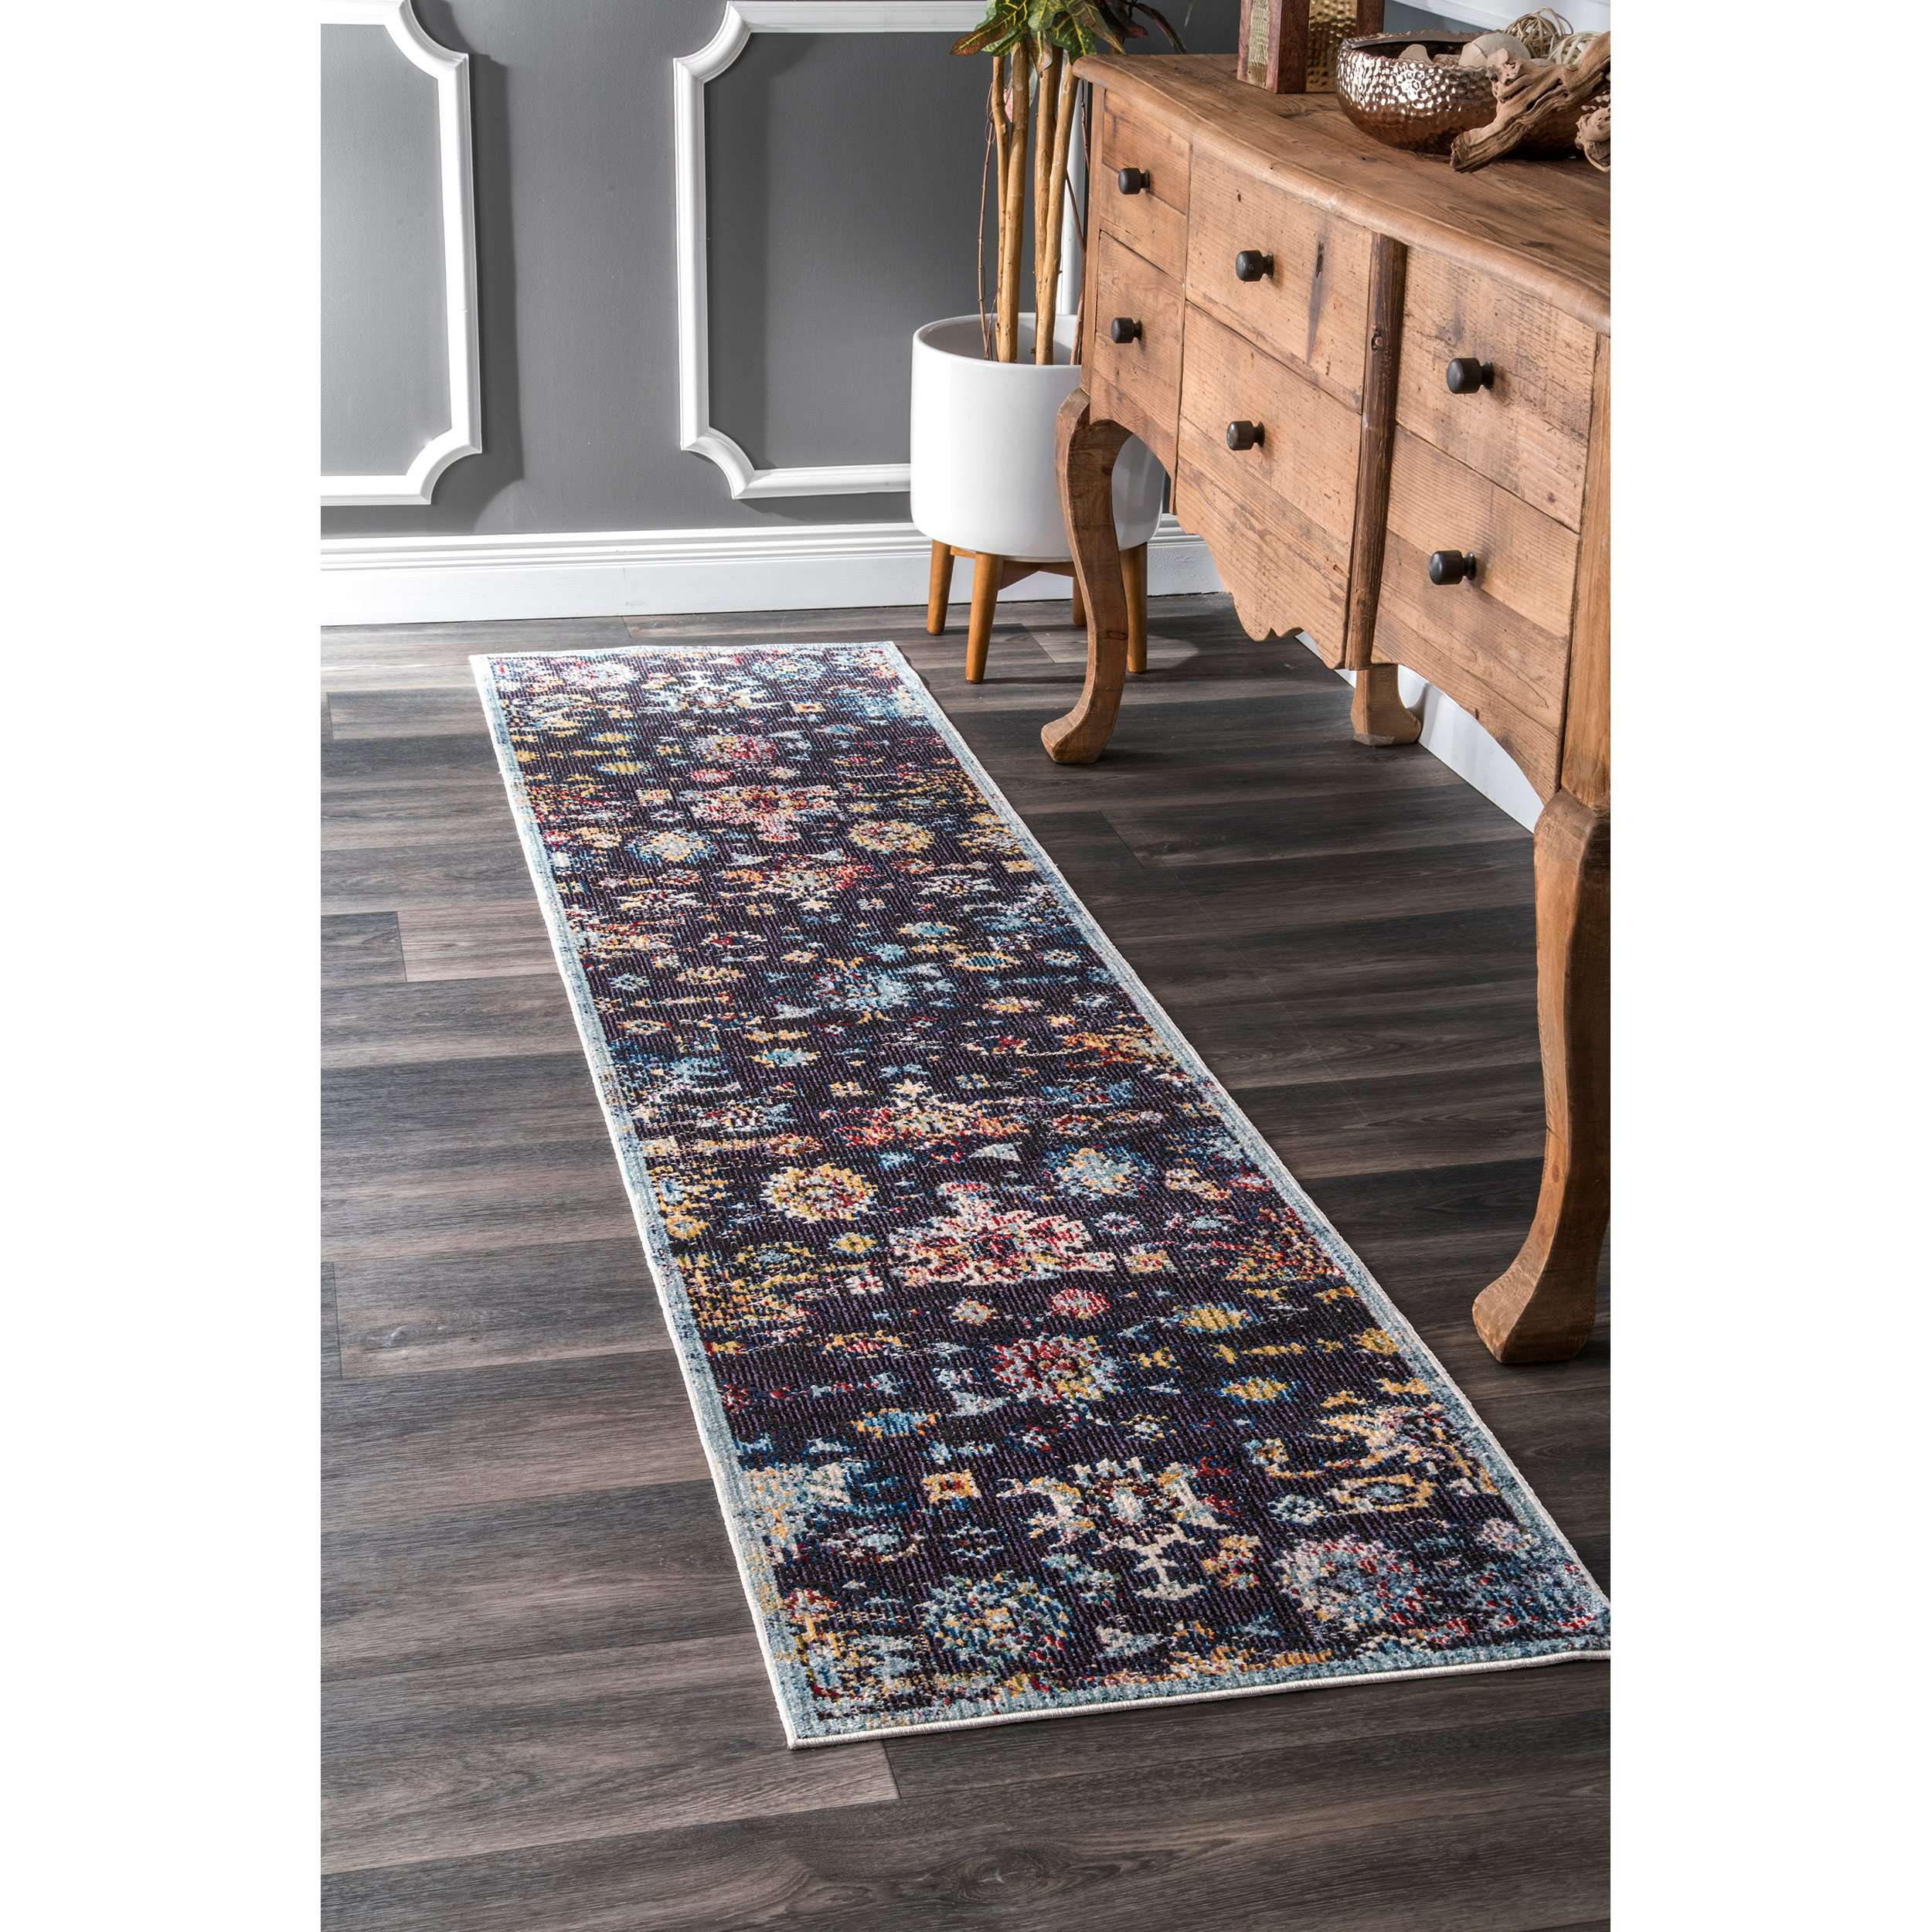 zigzags area at chindi rugs rainbow indian rug multicolored hand recycled fabric cotton bohemian tufted novica